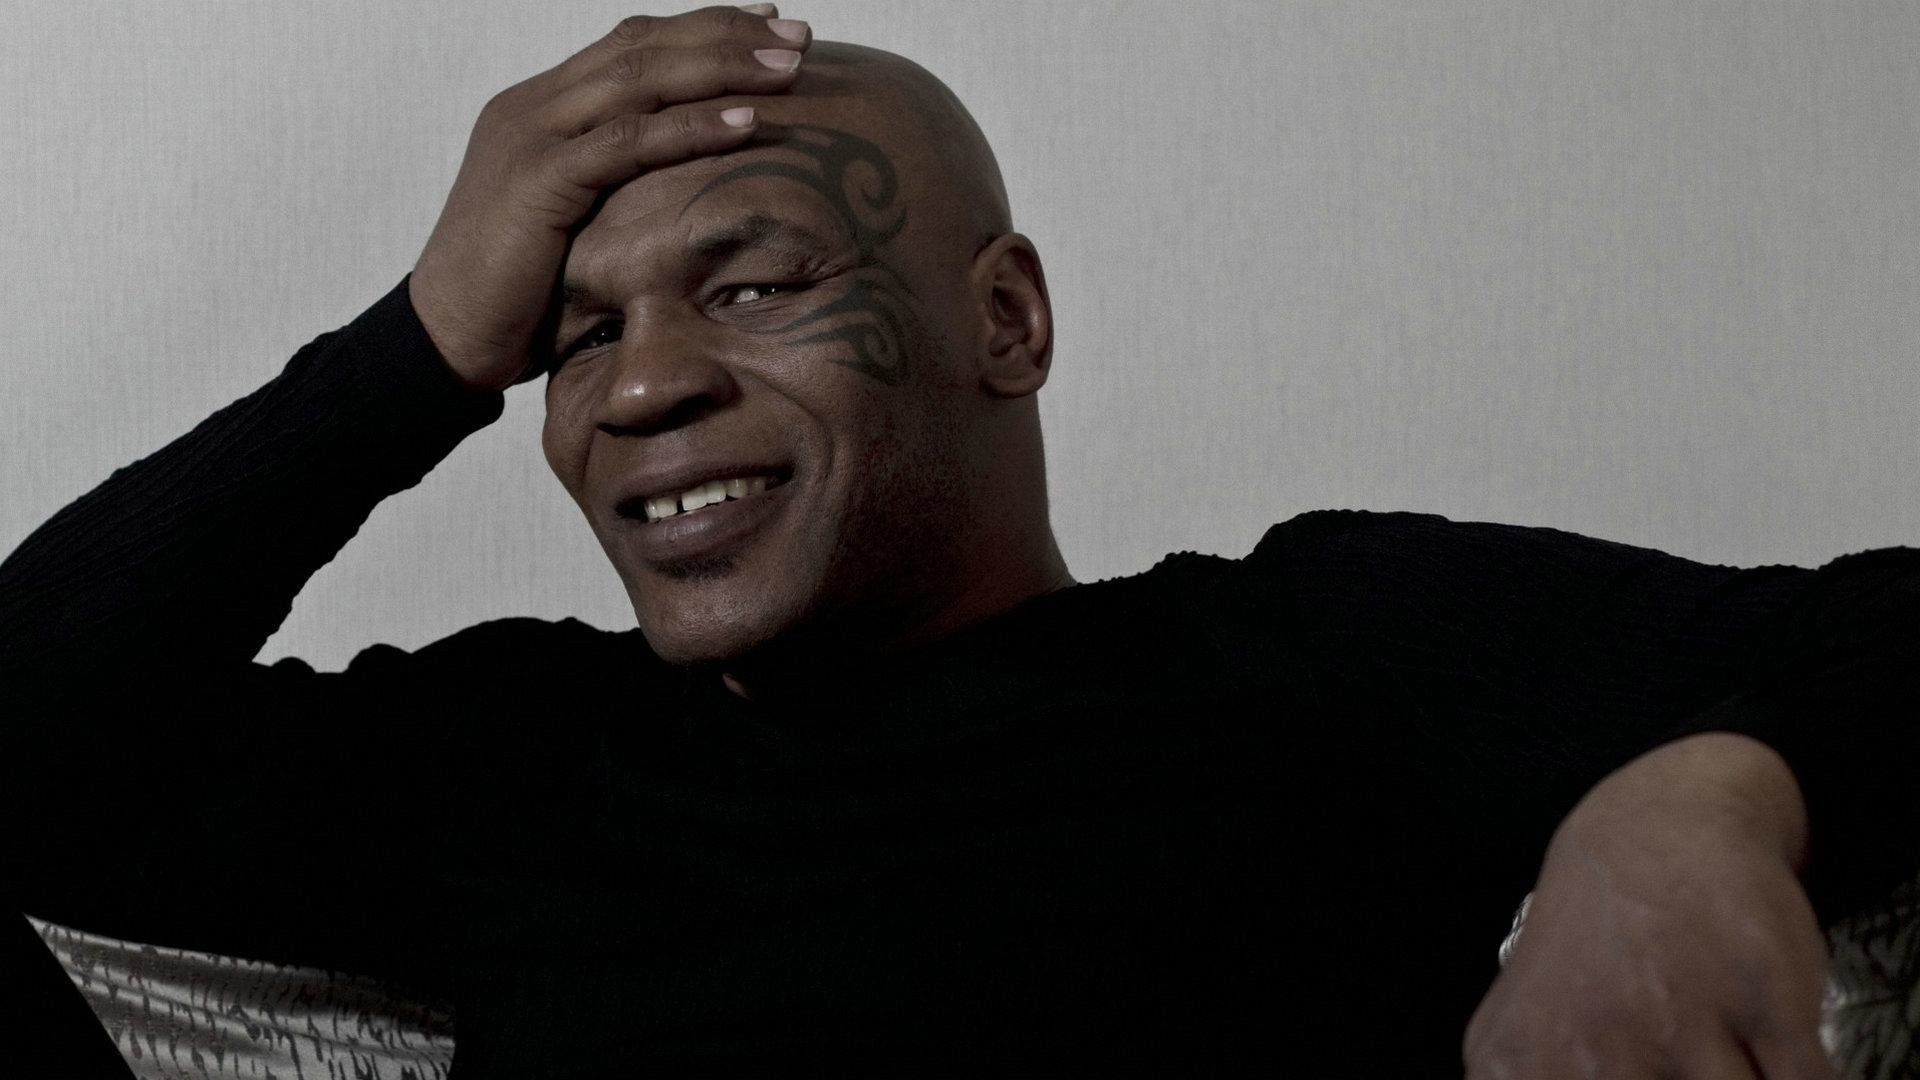 Free Mike Tyson high quality wallpaper ID:232753 for hd 1920x1080 PC